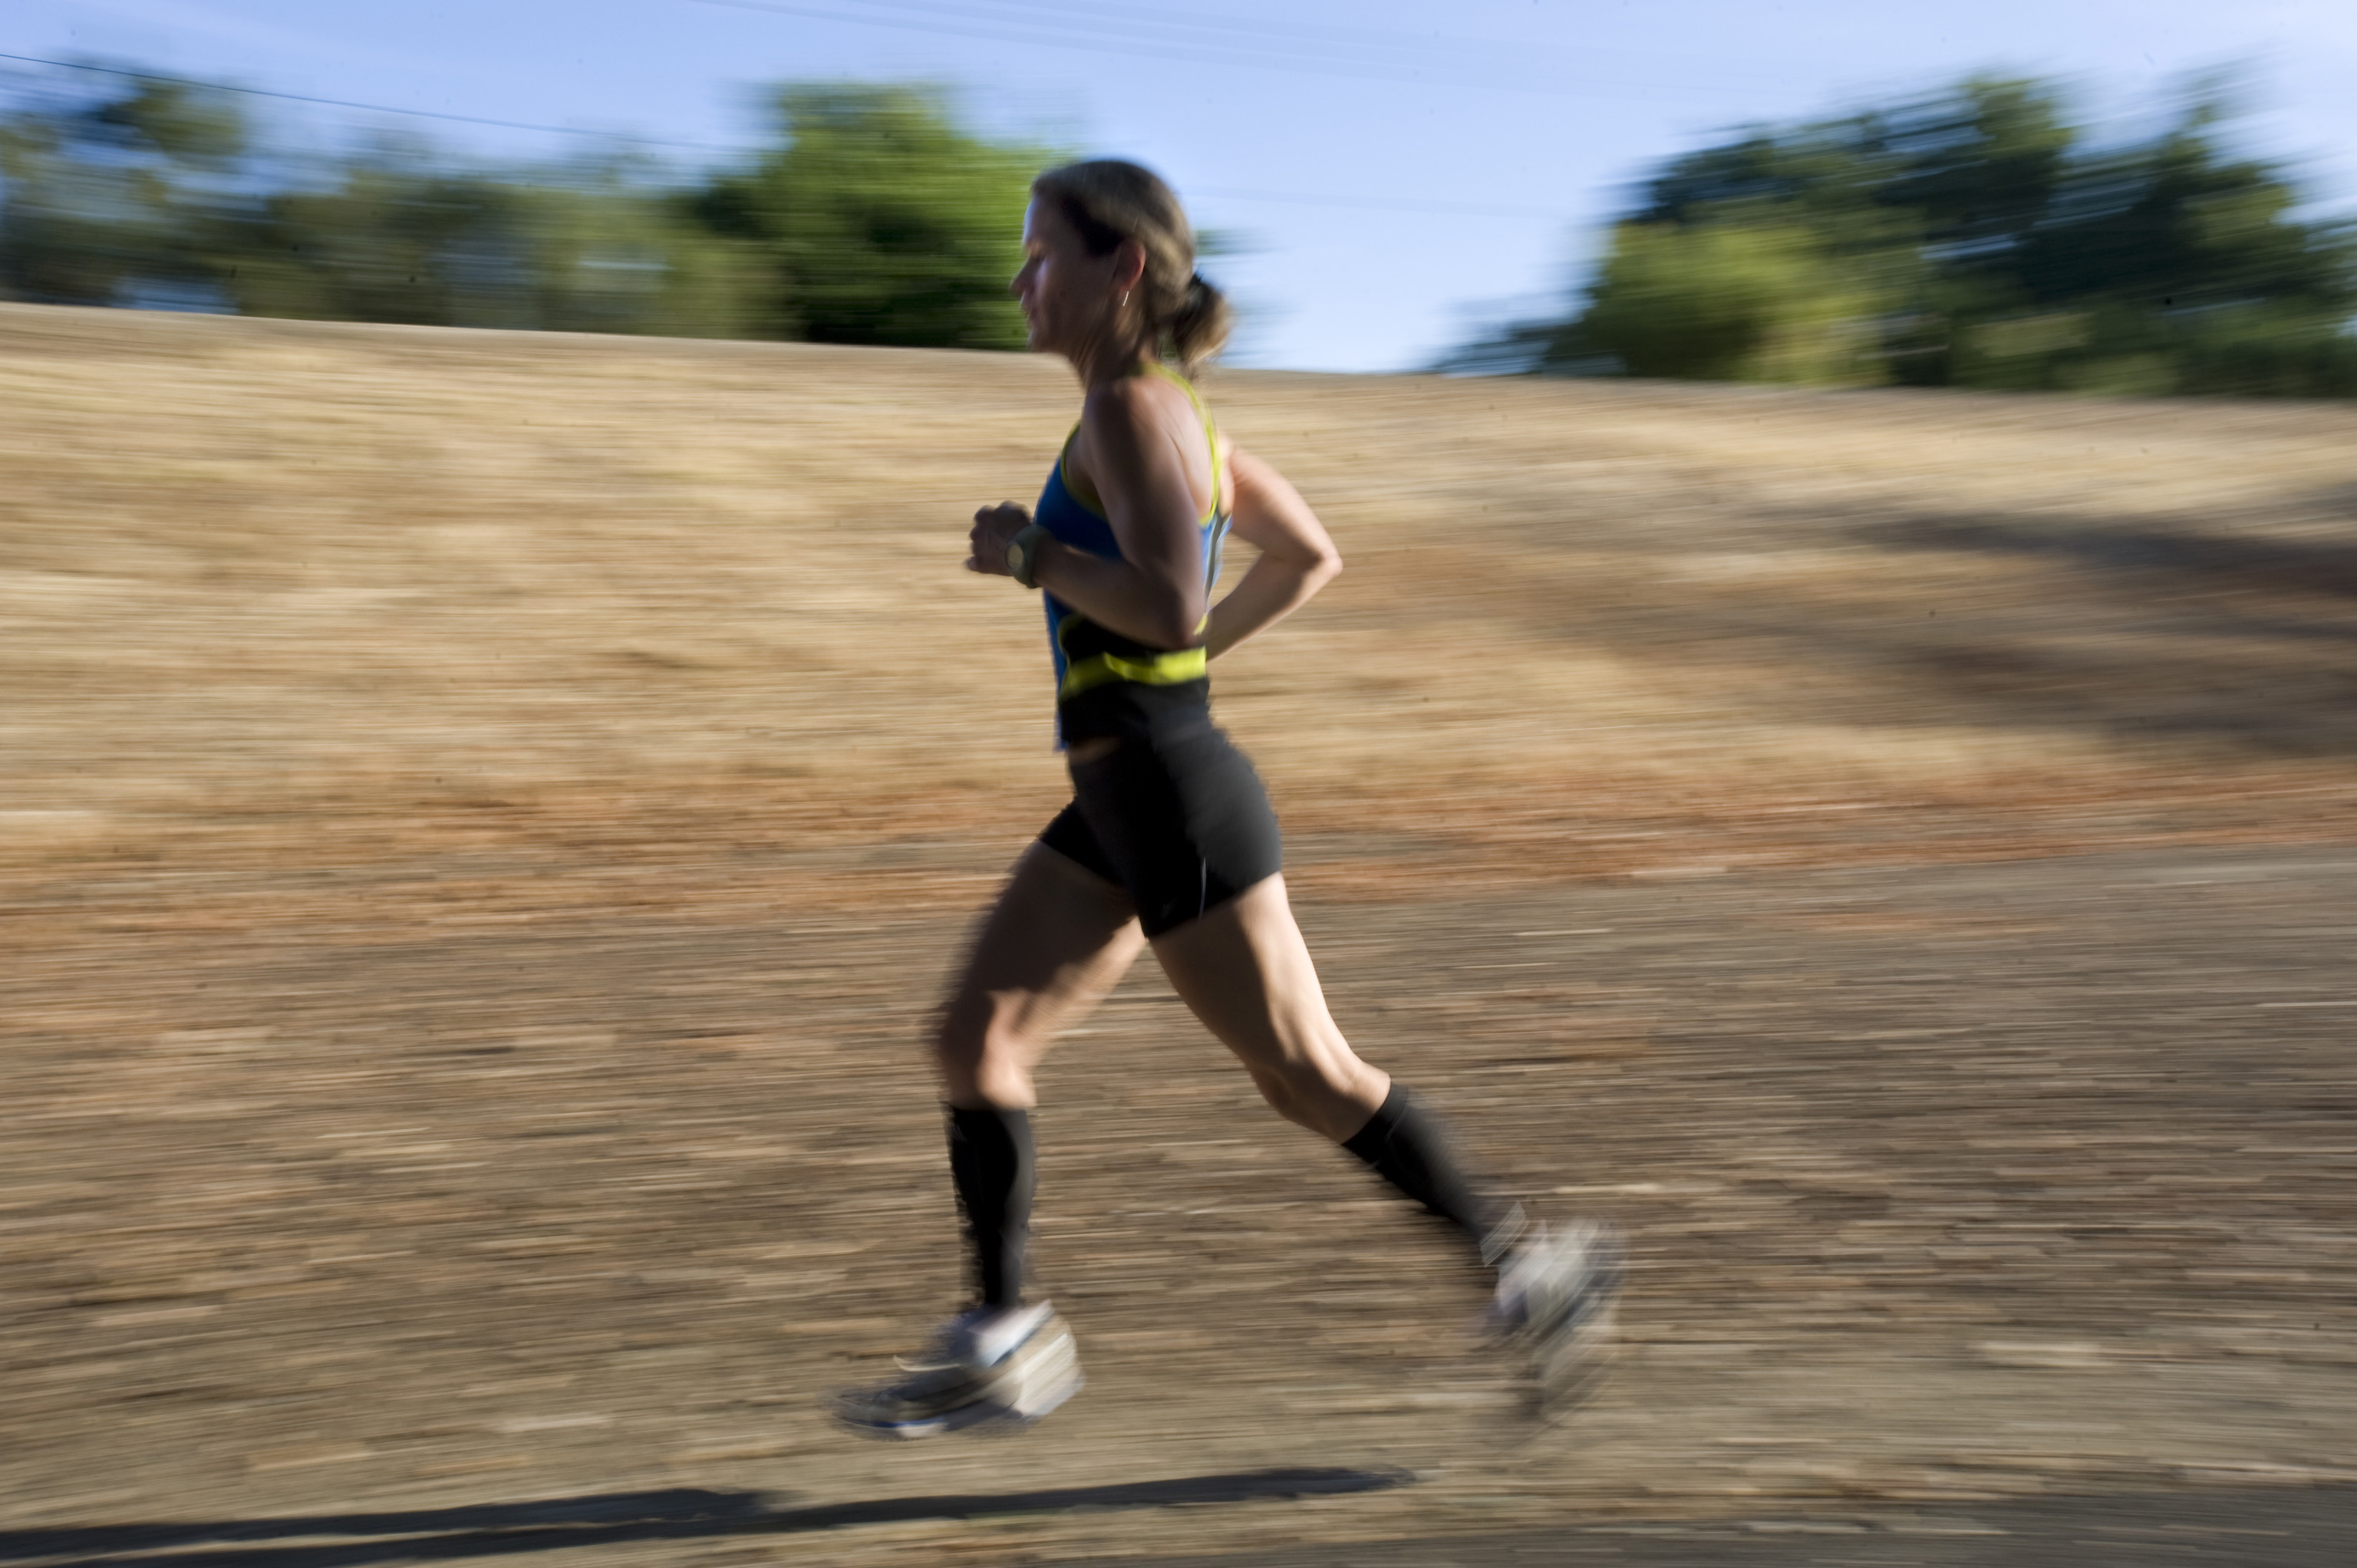 Jaymee Marty, 42, of Sacramento, runs along the American River bike trail, Sep. 17, 2009. Marty, who barely missed qualifying for the Olympic Trials i...